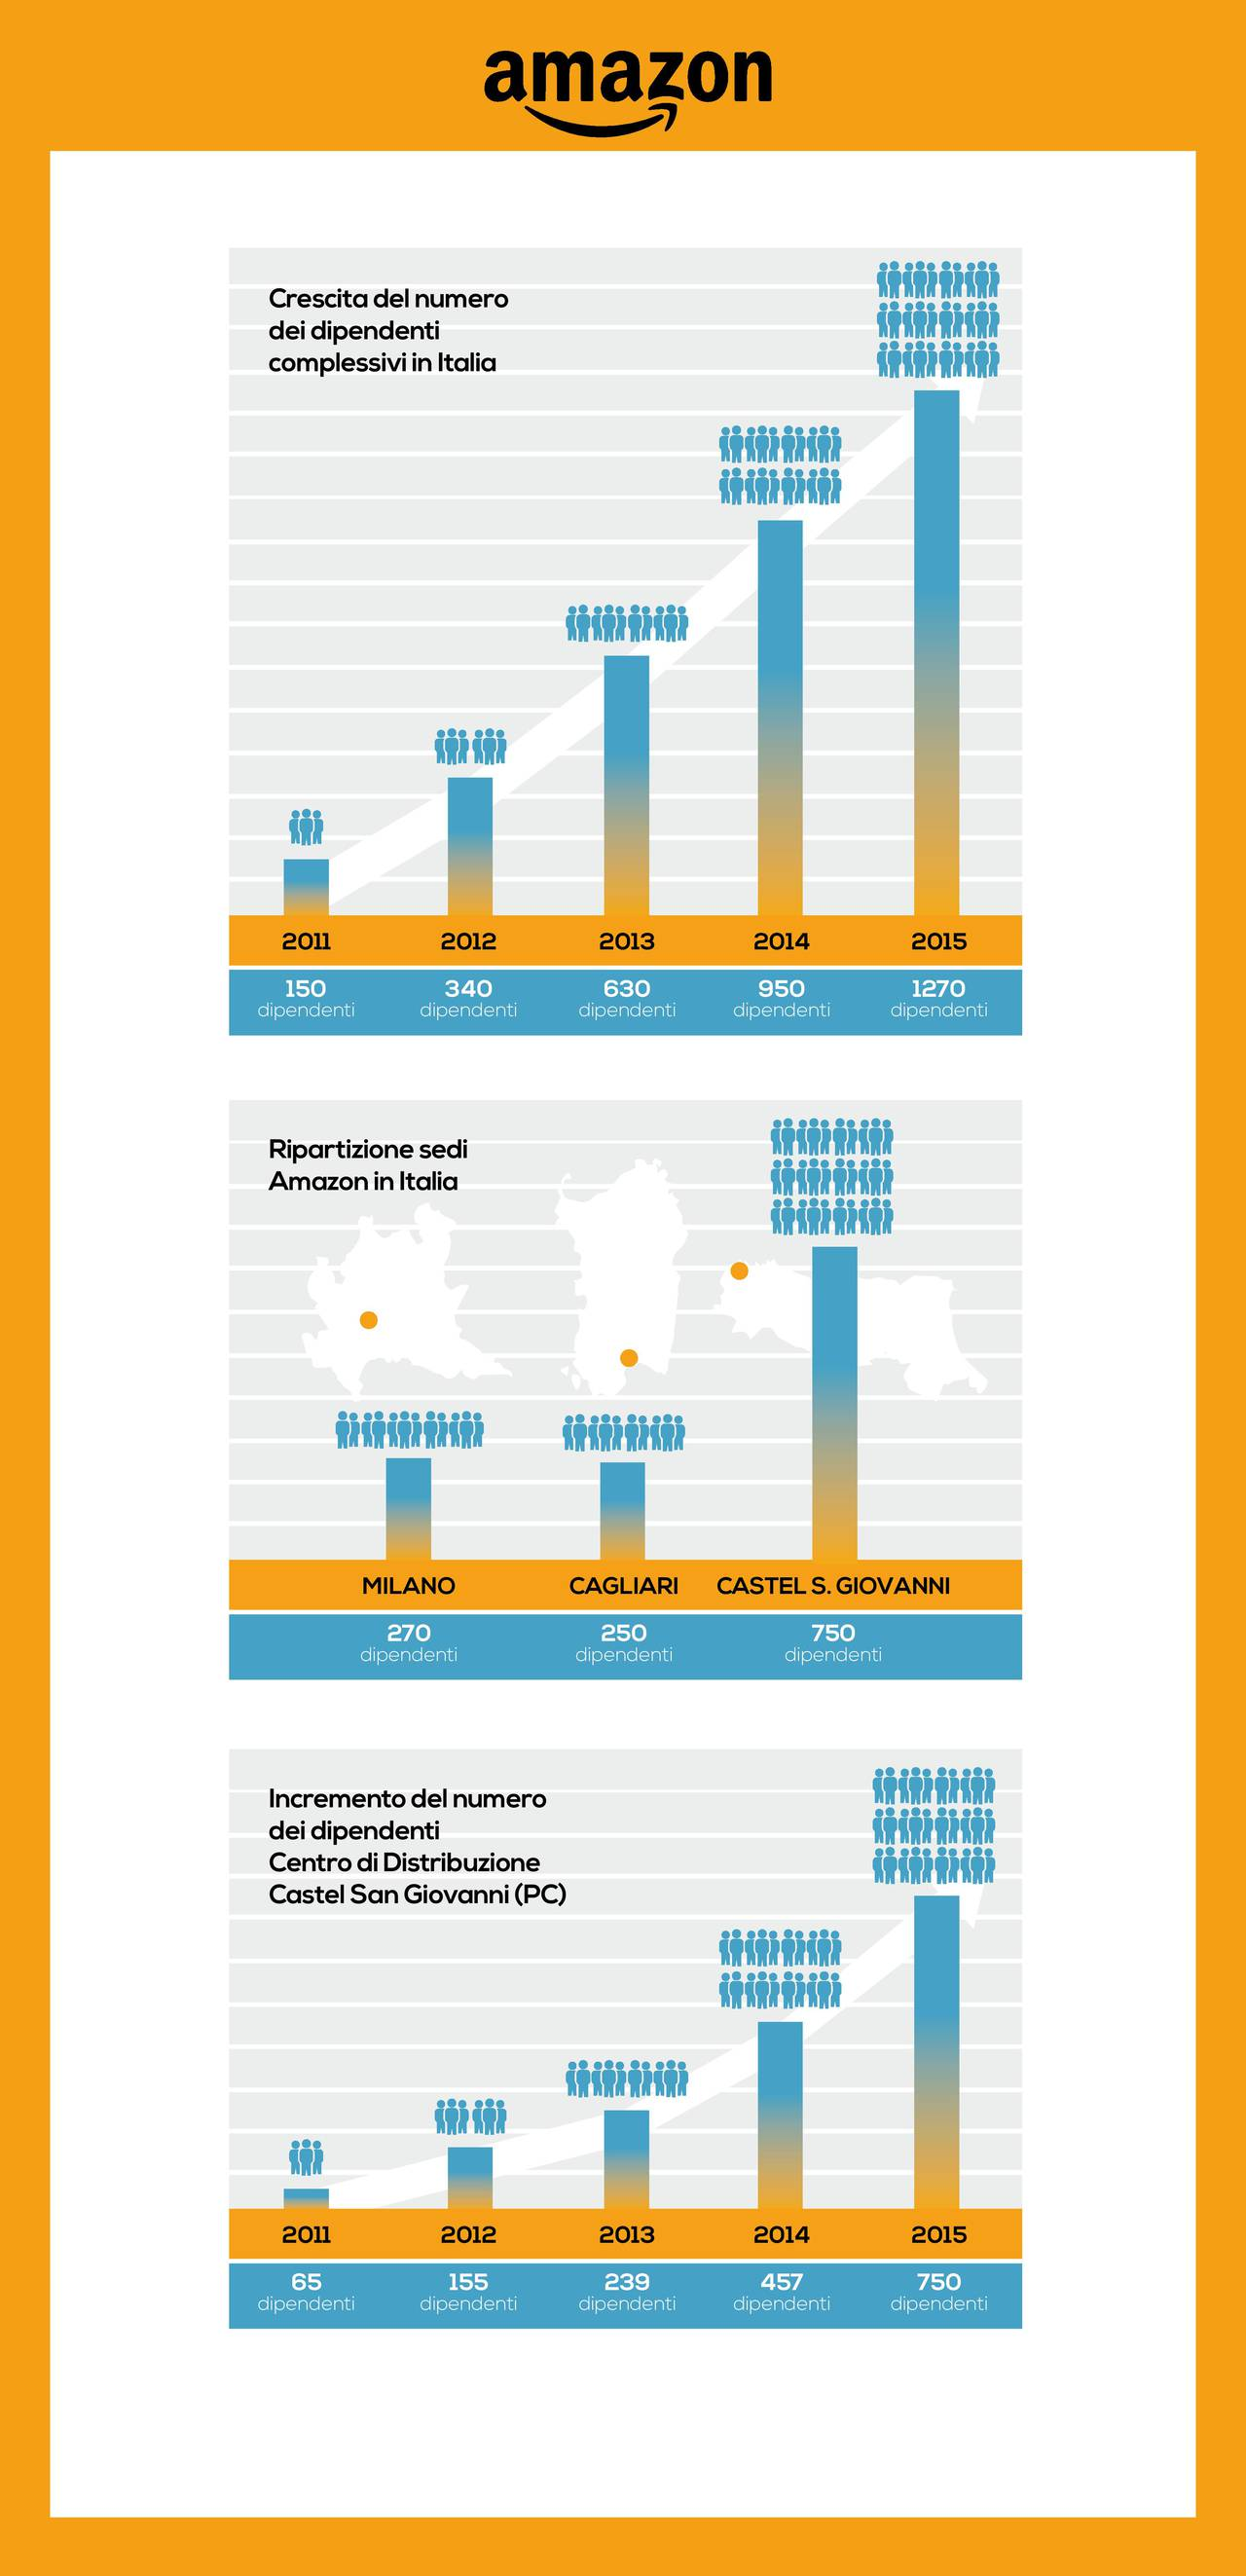 infograficaAMAZON0209 (5)-page-001